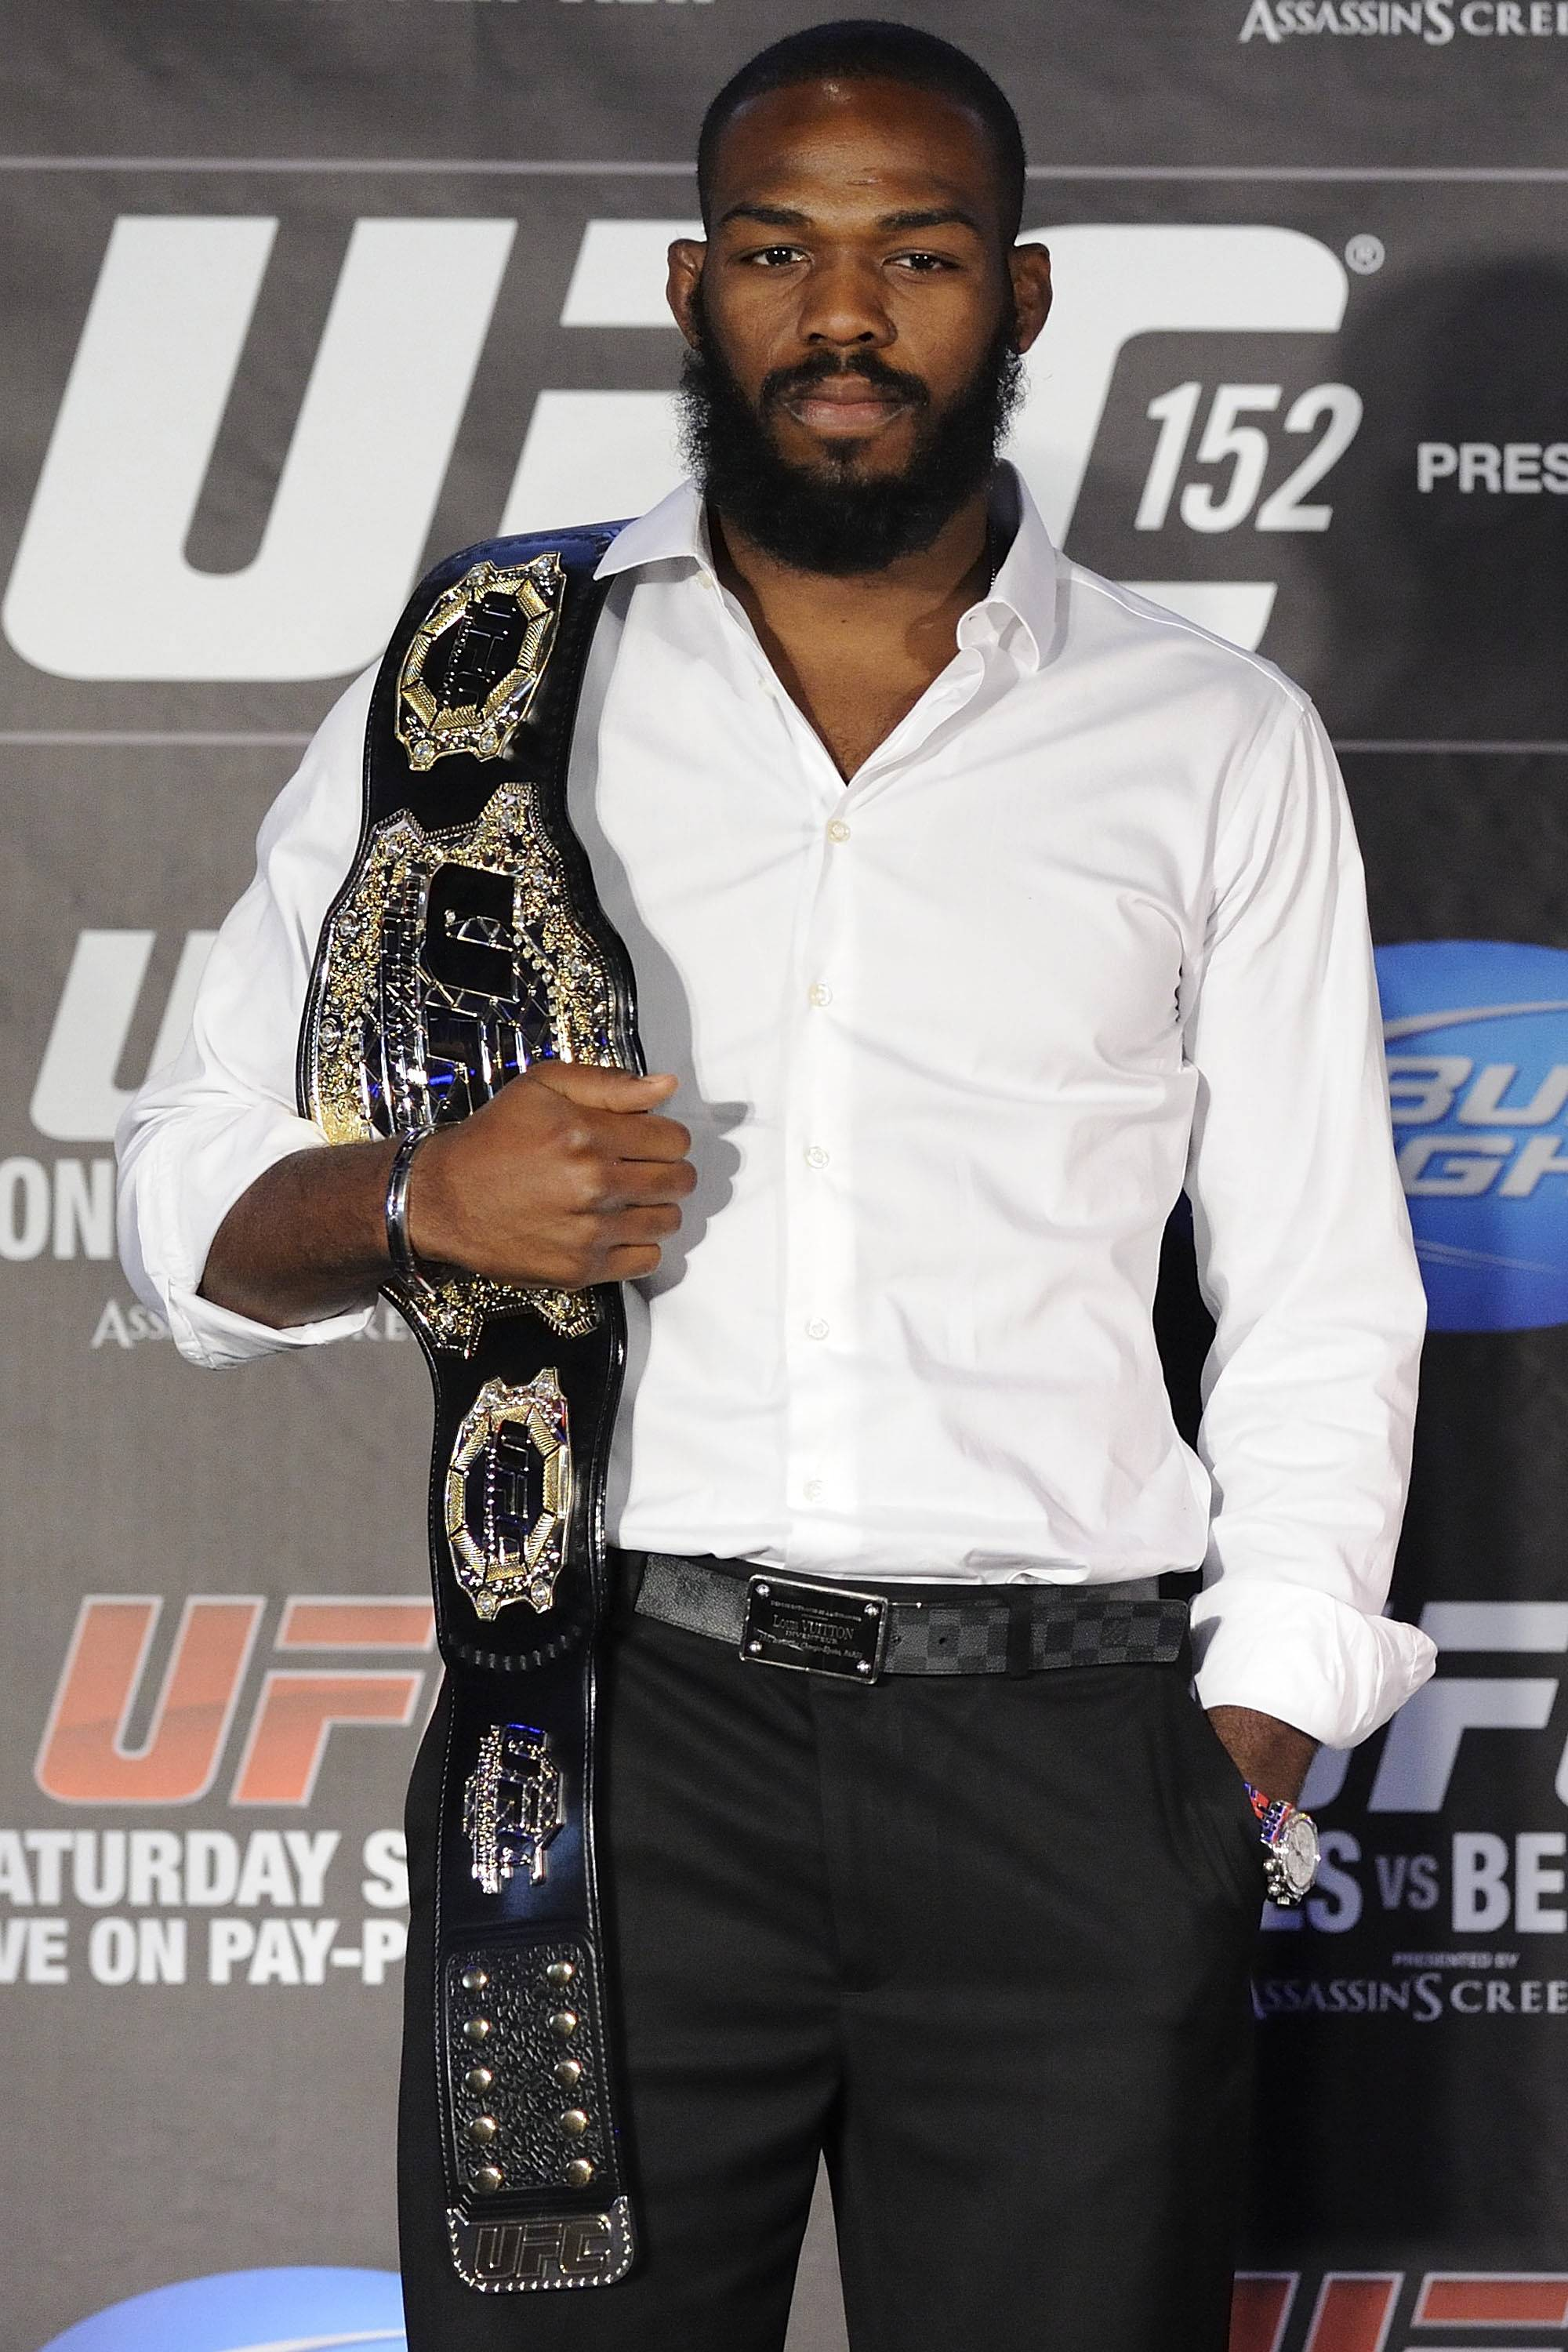 Jon Jones attends the  UFC 152 Press Conference ahead of his fight vs. Vitor Belfort. (WENN.com)